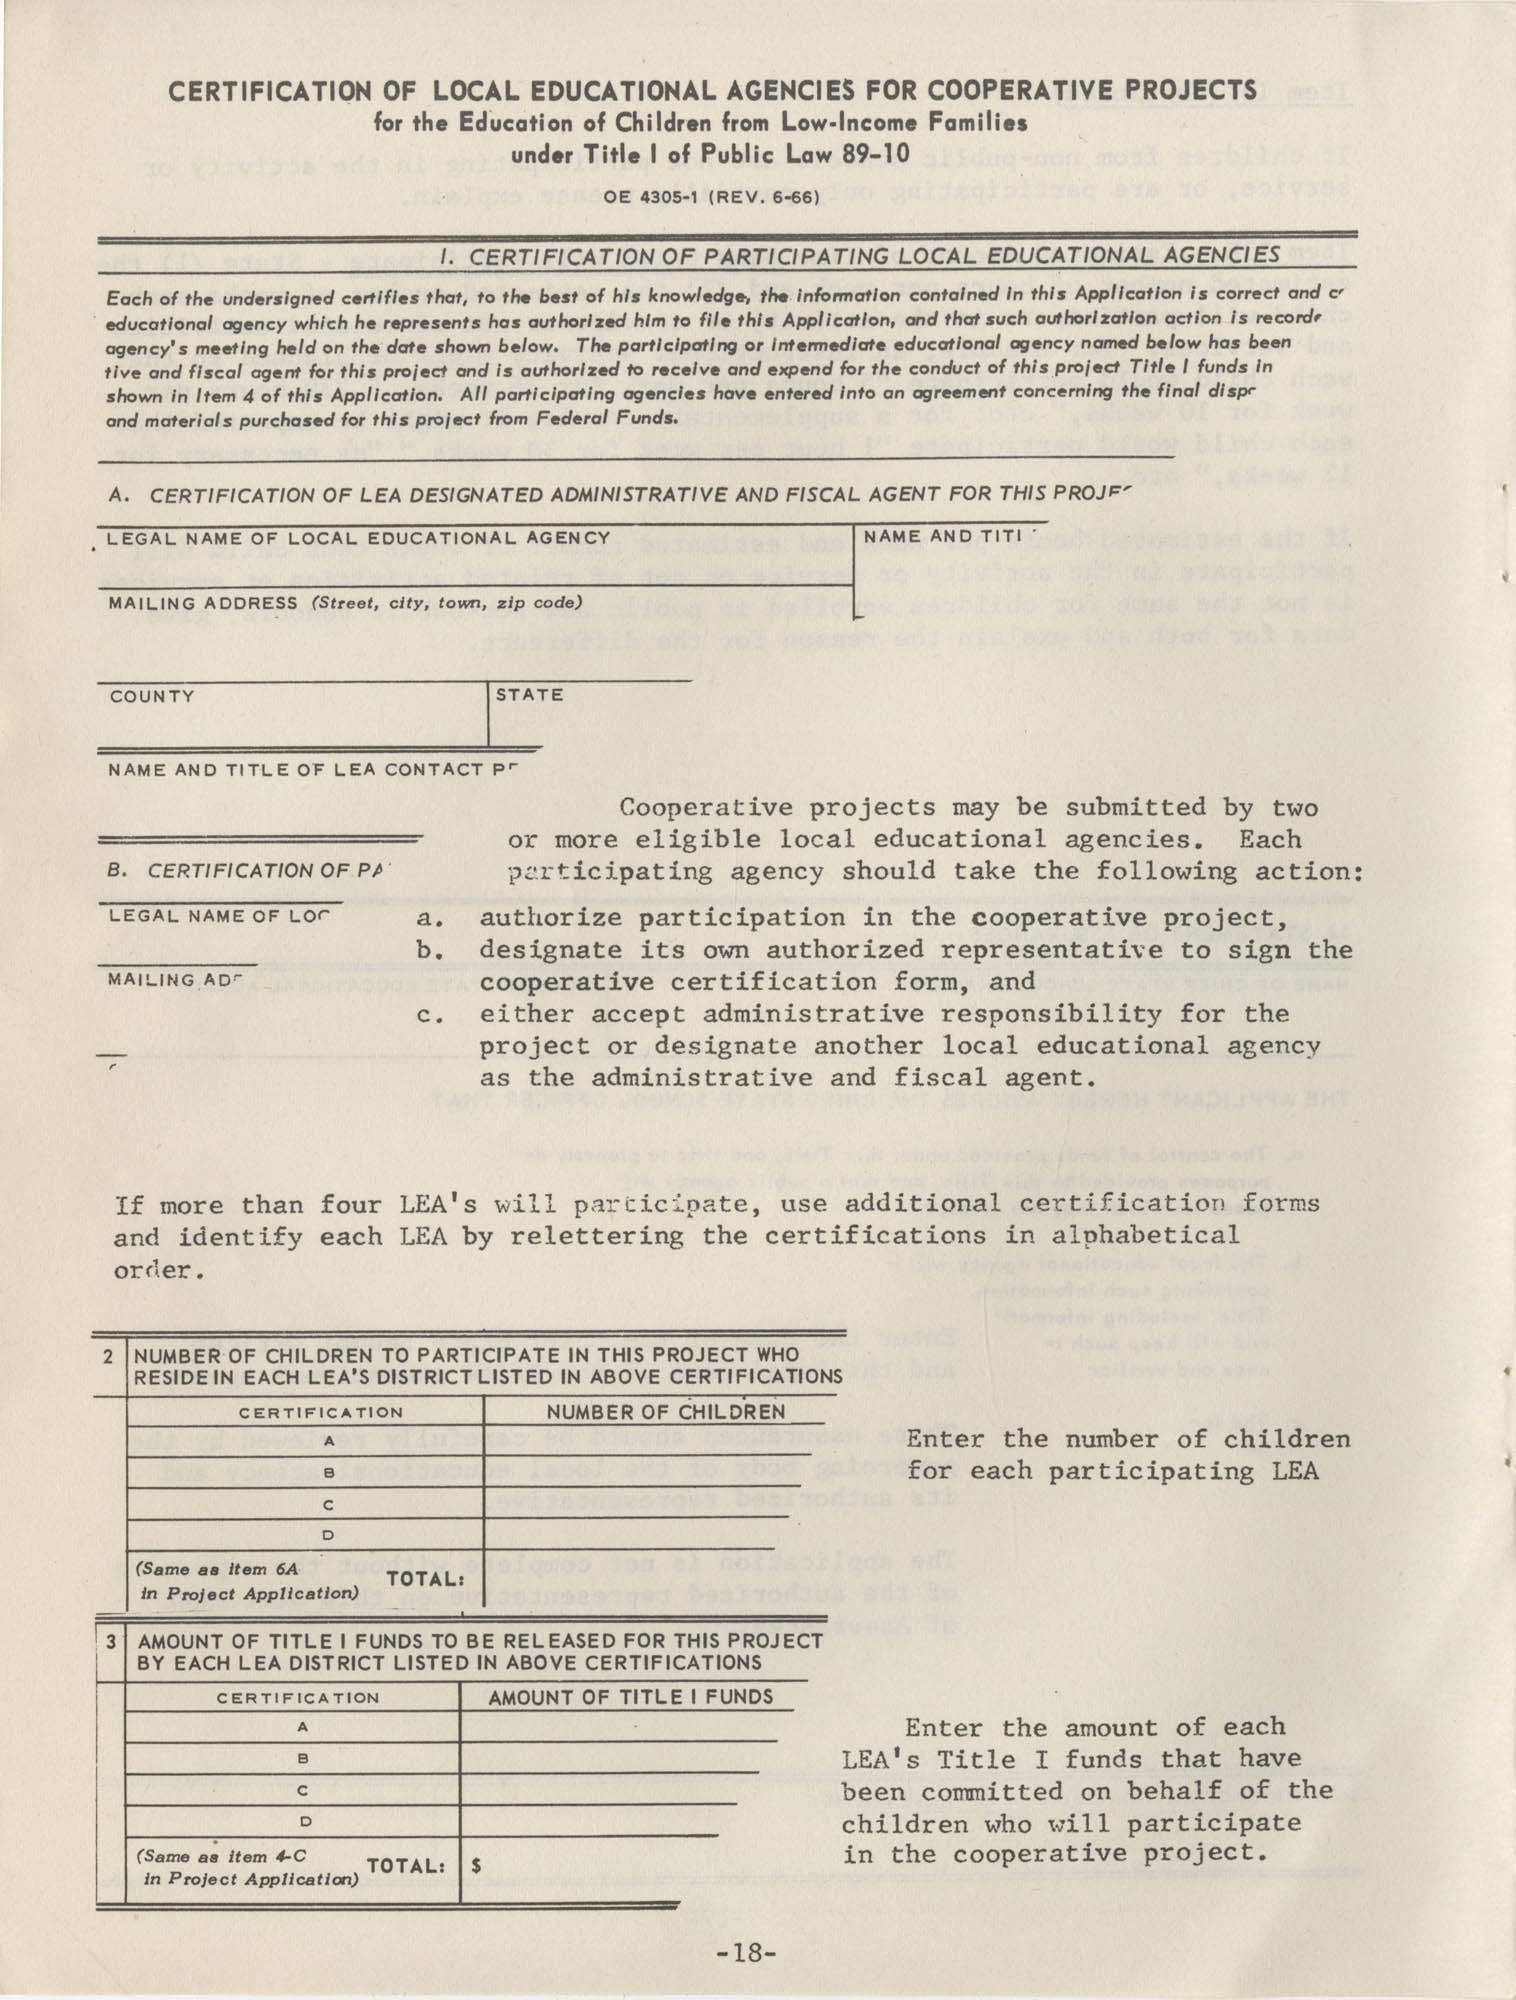 Instructions for Title 1, 1967 Application Forms, Page 18